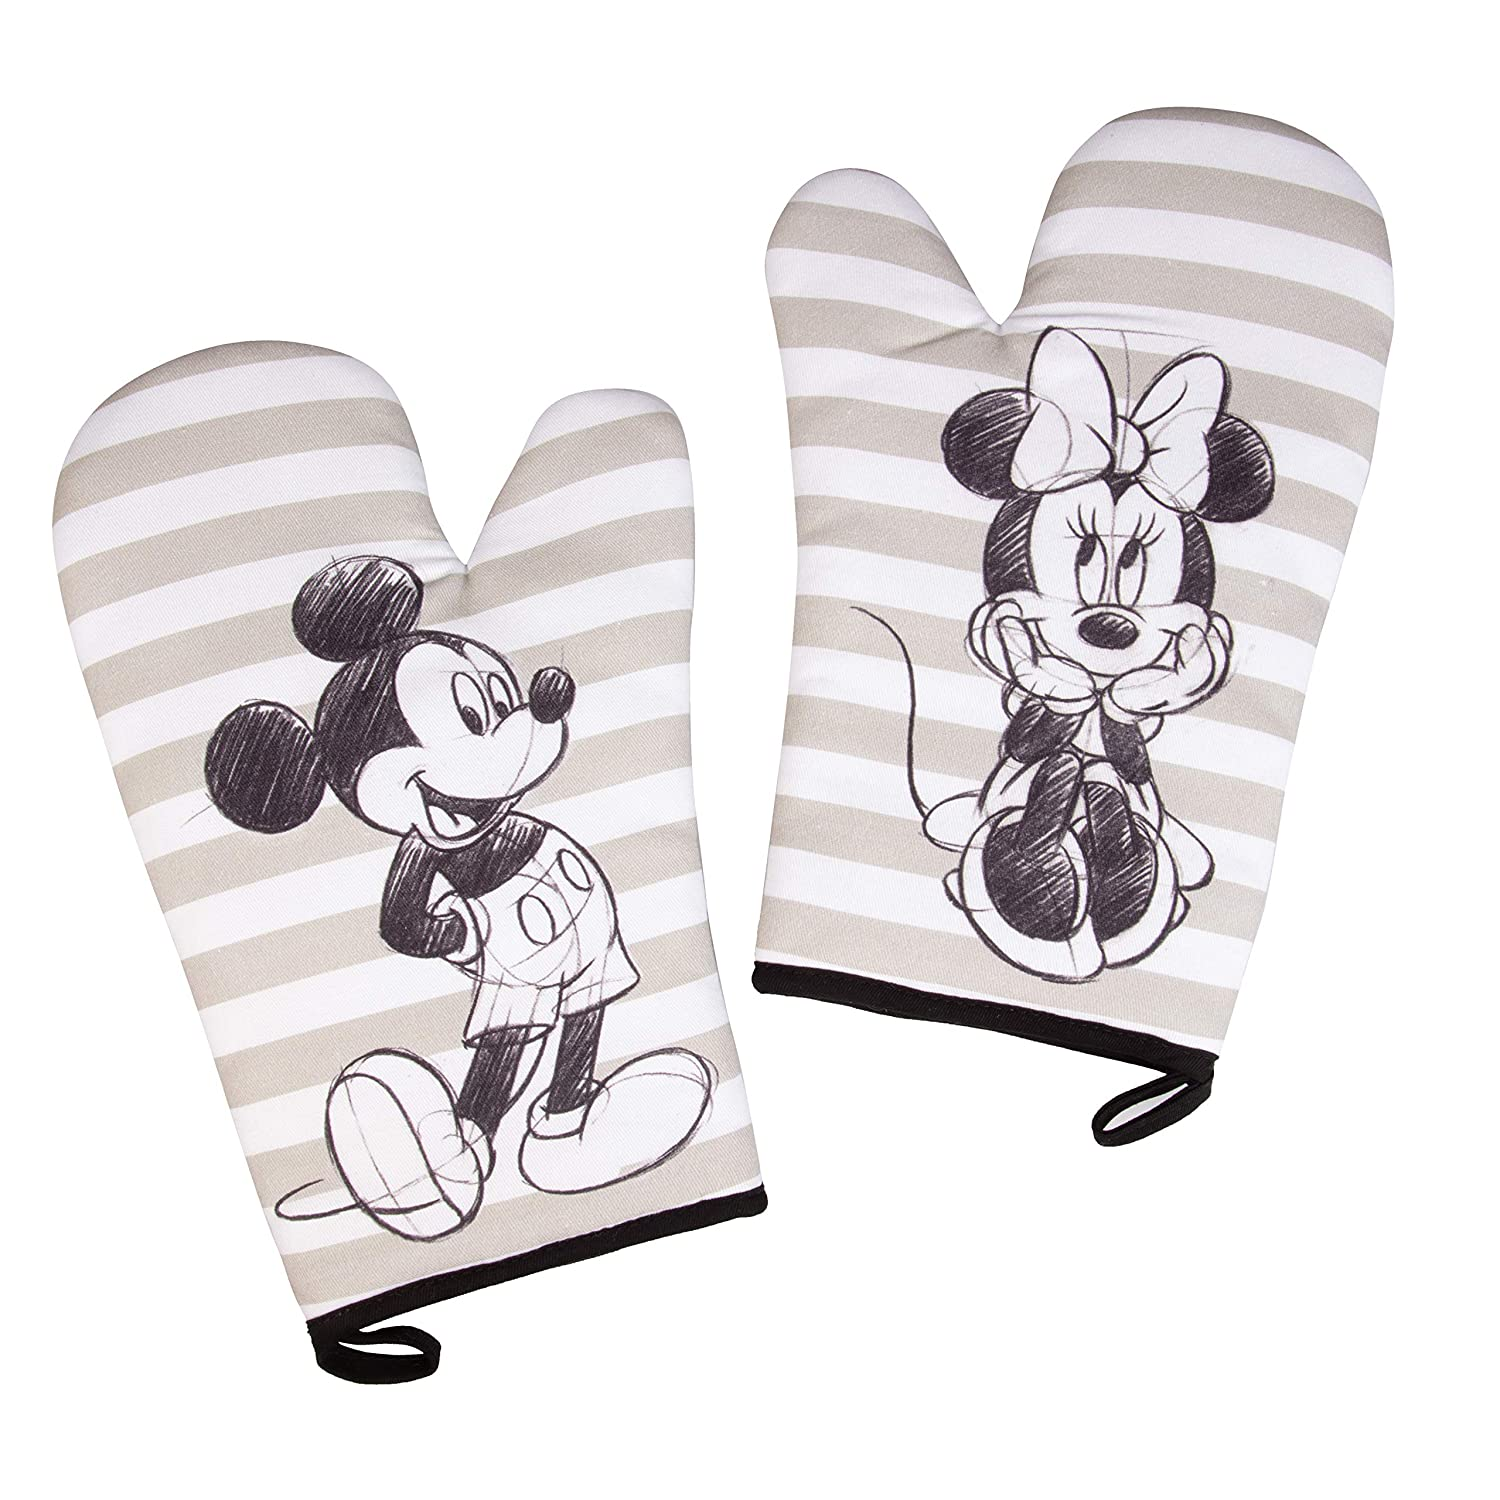 Disney Mickey and Minnie Mouse Oven Mitt Set with Sketch Art Design - Heat Resistant - 100% Cotton - Pair